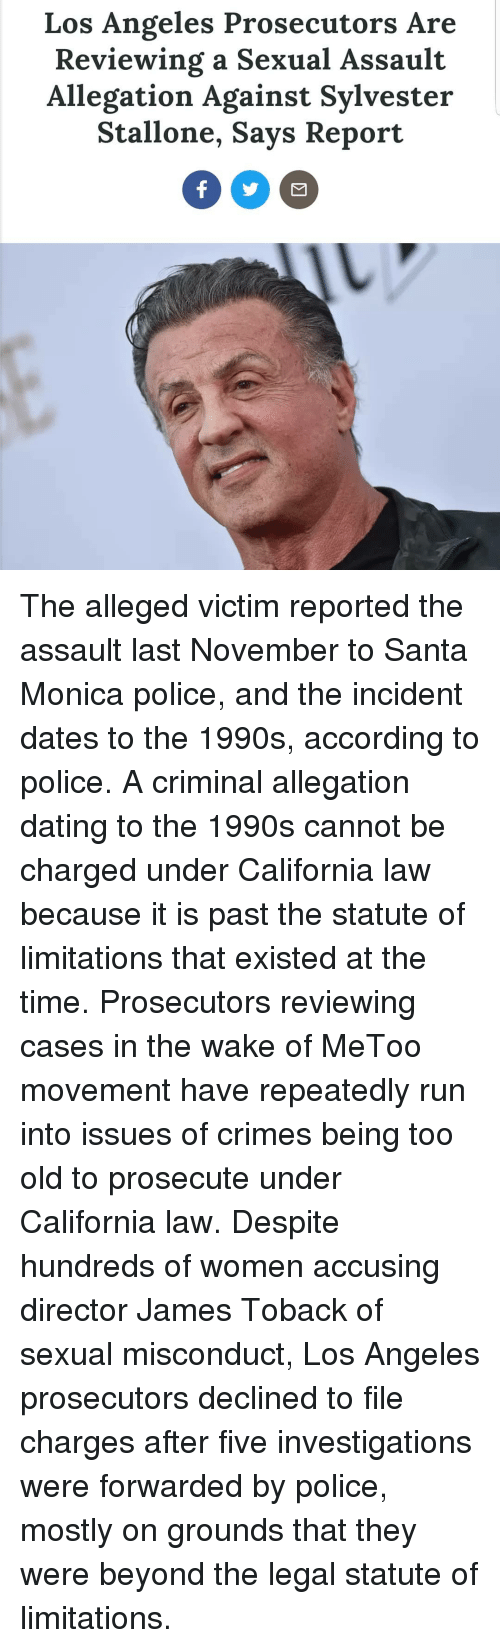 Dating, Memes, and Police: Los Angeles Prosecutors Are  Reviewing a Sexual Assault  Allegation Against Sylvester  Stallone, Says Report The alleged victim reported the assault last November to Santa Monica police, and the incident dates to the 1990s, according to police. A criminal allegation dating to the 1990s cannot be charged under California law because it is past the statute of limitations that existed at the time. Prosecutors reviewing cases in the wake of MeToo movement have repeatedly run into issues of crimes being too old to prosecute under California law. Despite hundreds of women accusing director James Toback of sexual misconduct, Los Angeles prosecutors declined to file charges after five investigations were forwarded by police, mostly on grounds that they were beyond the legal statute of limitations.